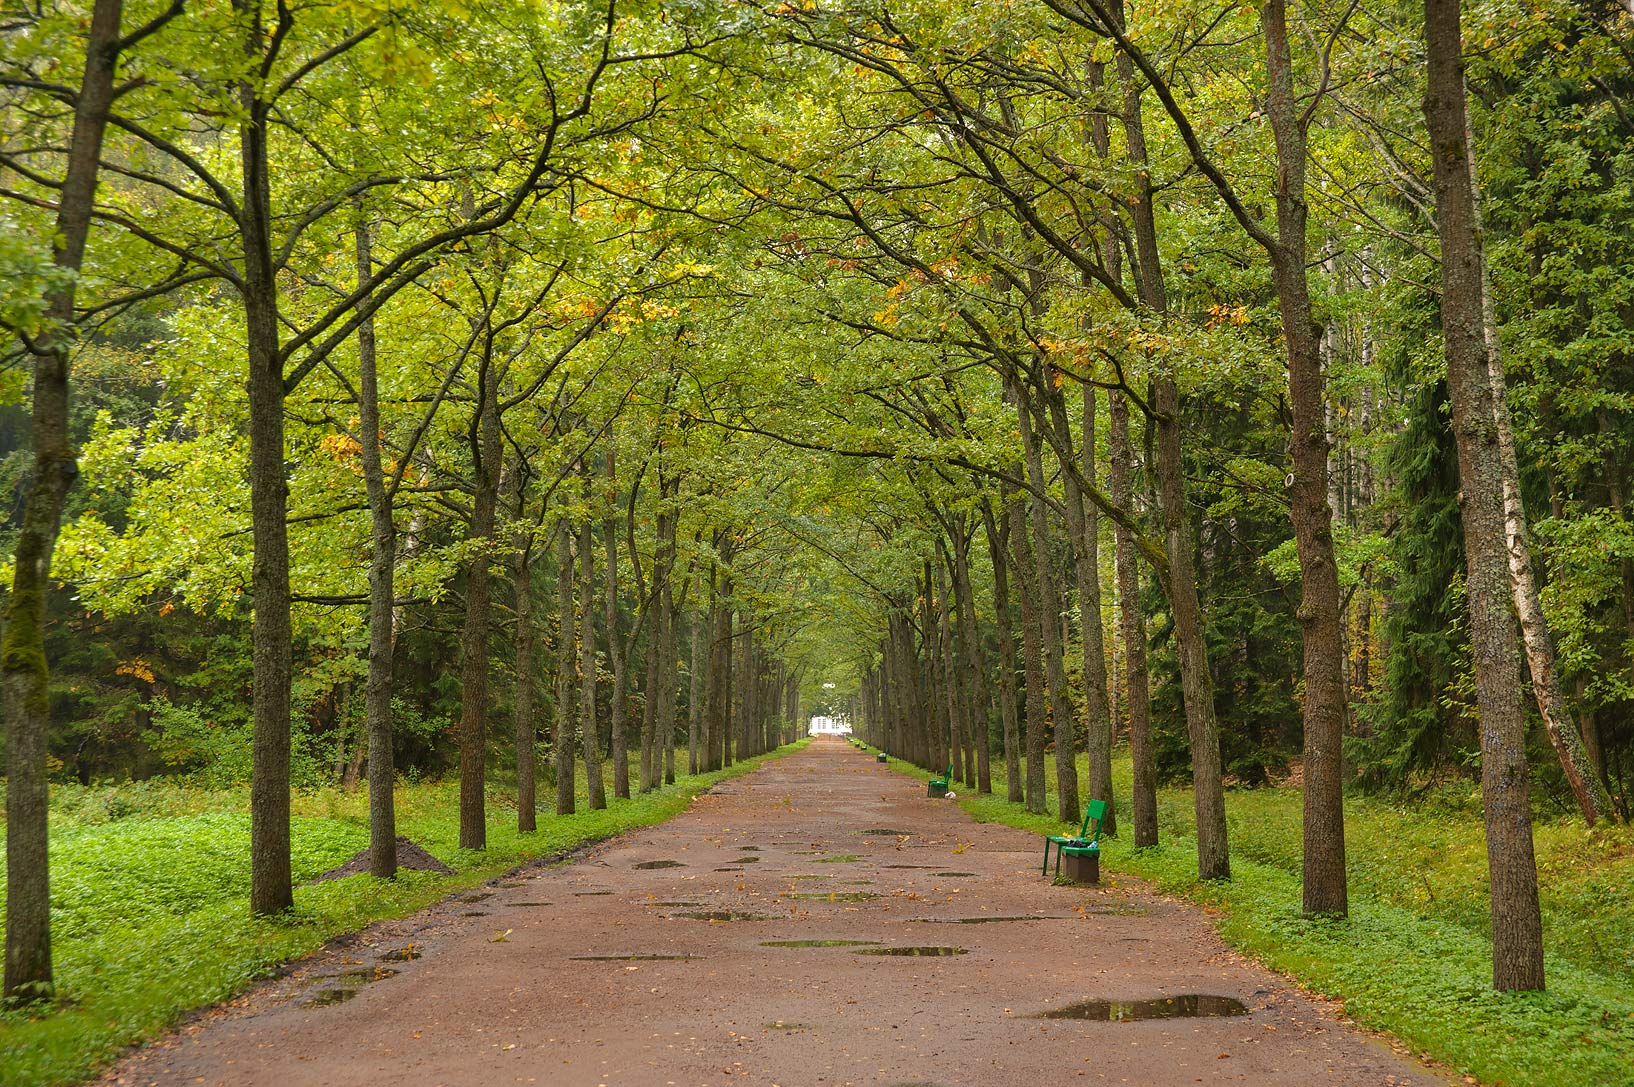 Green Woman Alley in Pavlovsk Park. Pavlovsk, a suburb of St.Petersburg, Russia